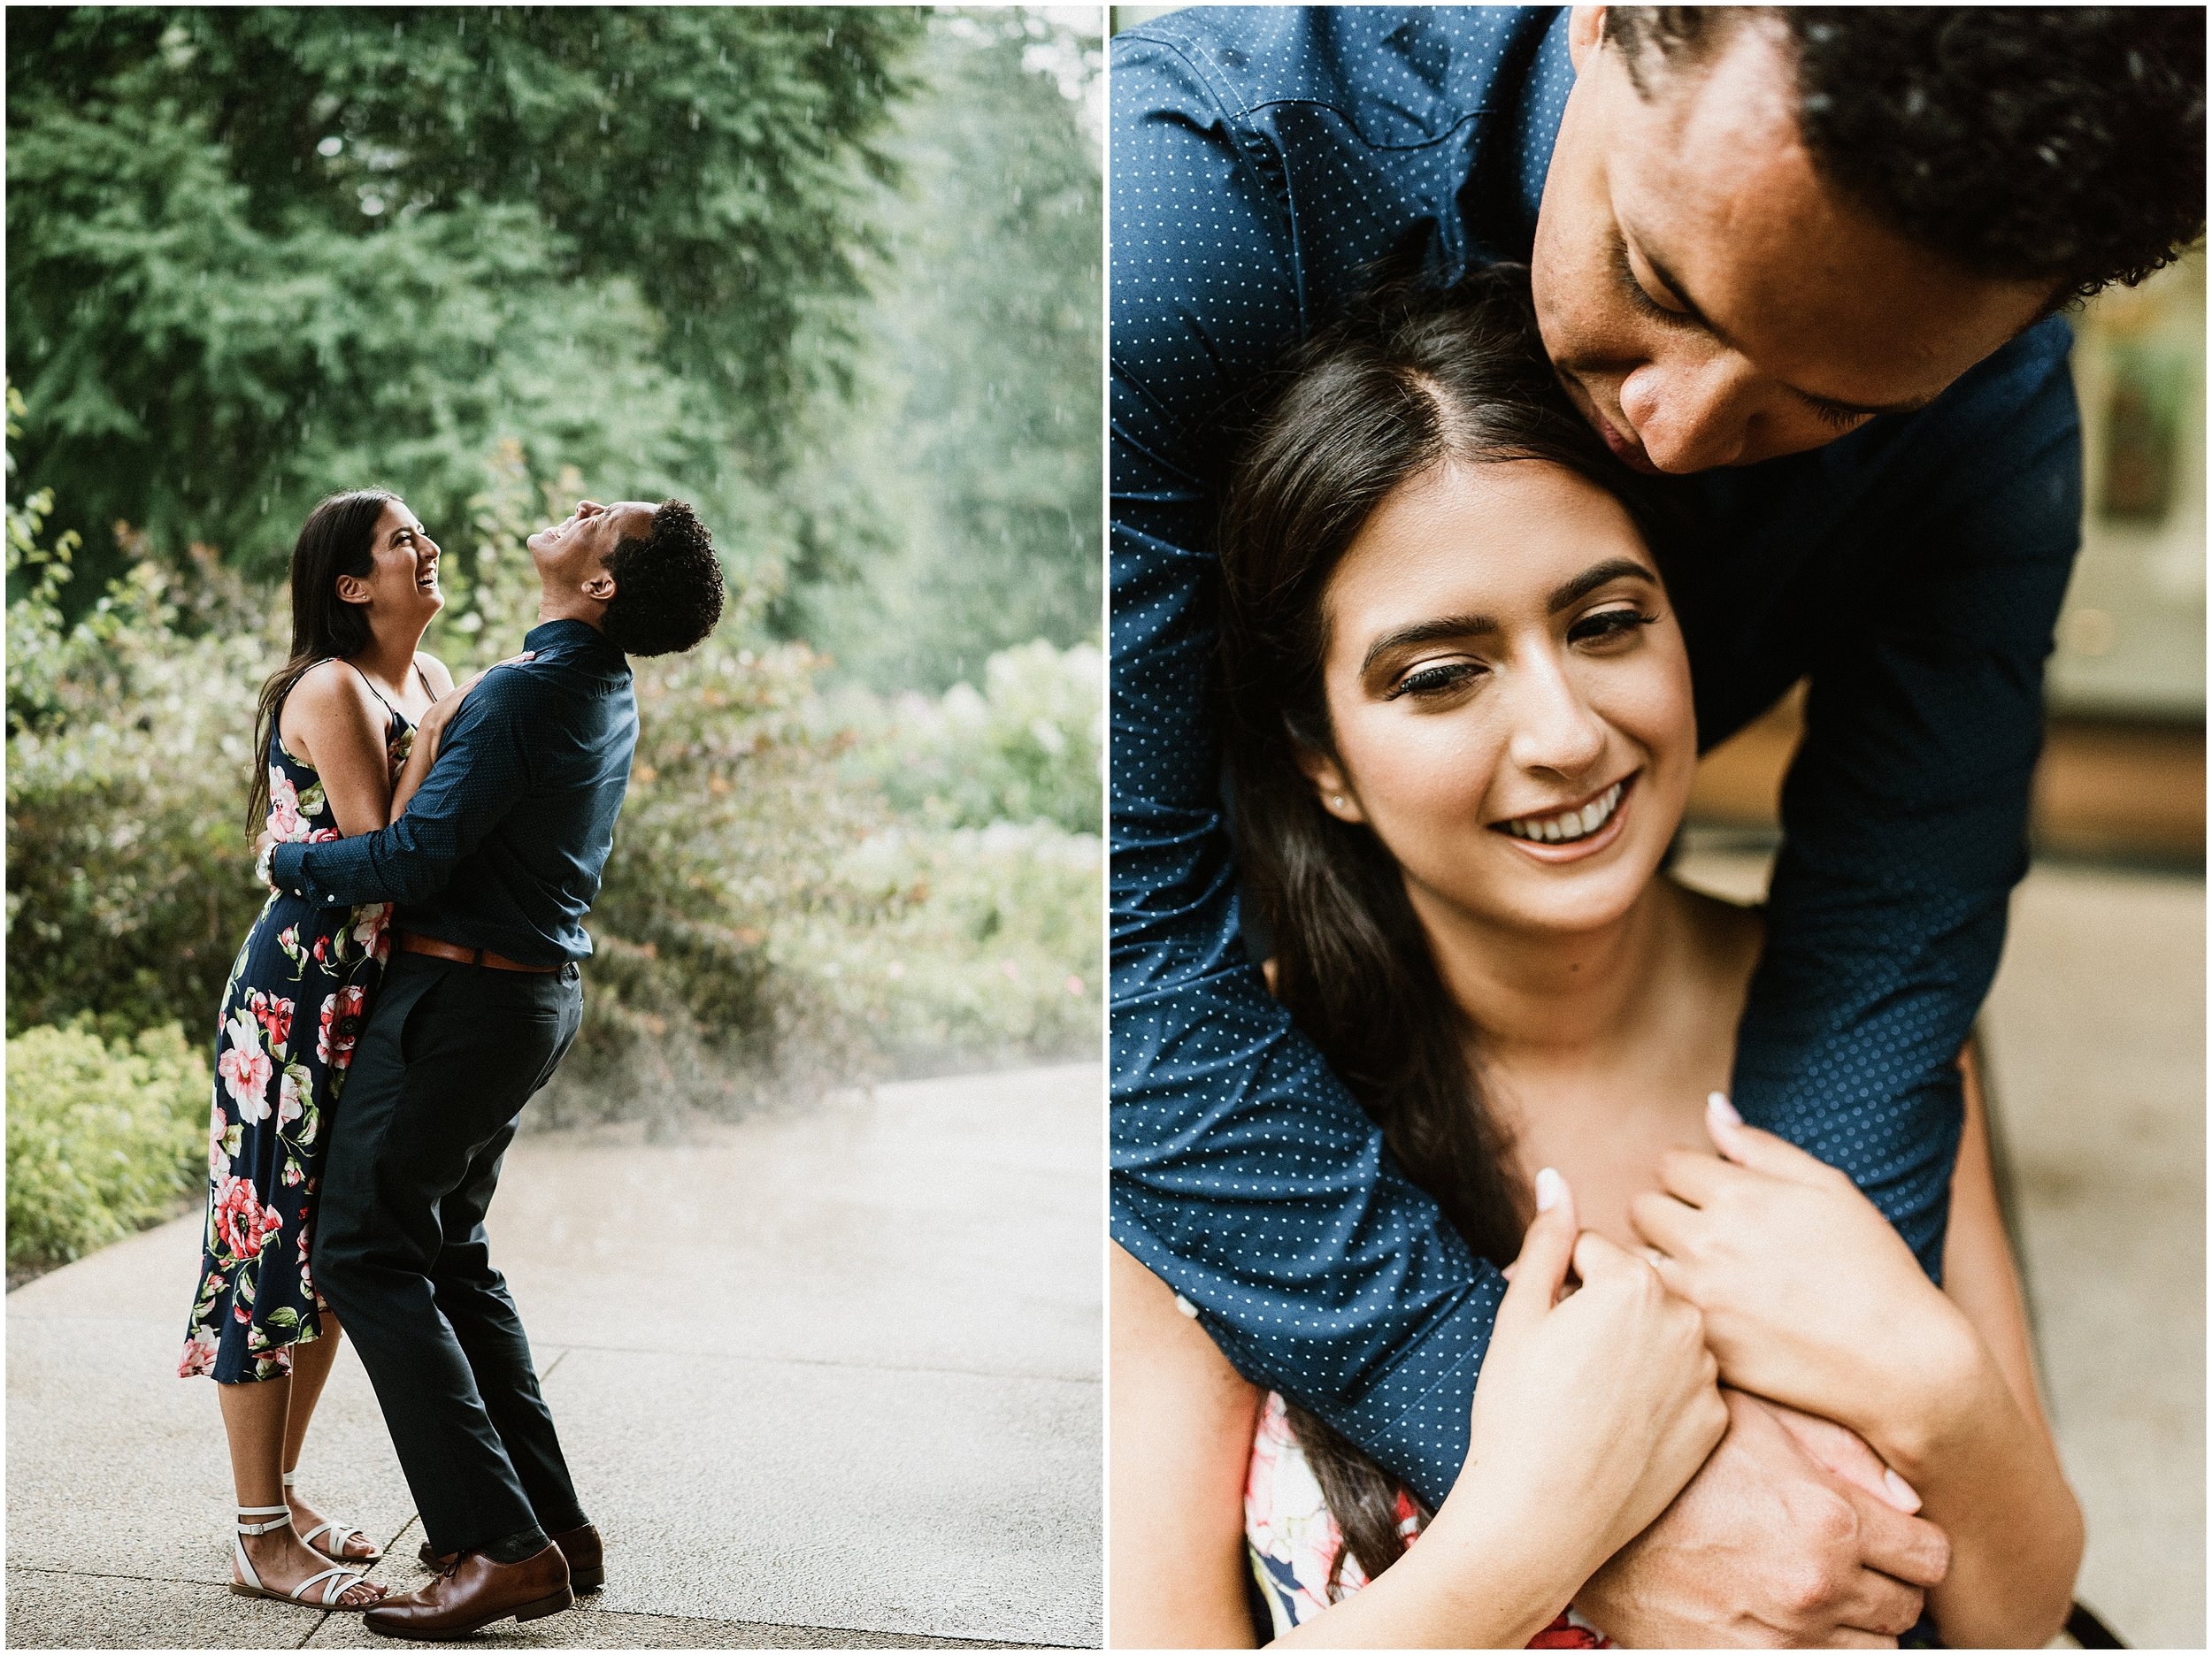 Cathy and Xavier | Stormy Sunshine Engagement Session | The Morton Arboretum | Lisle, IL | Chicago Wedding Photographer